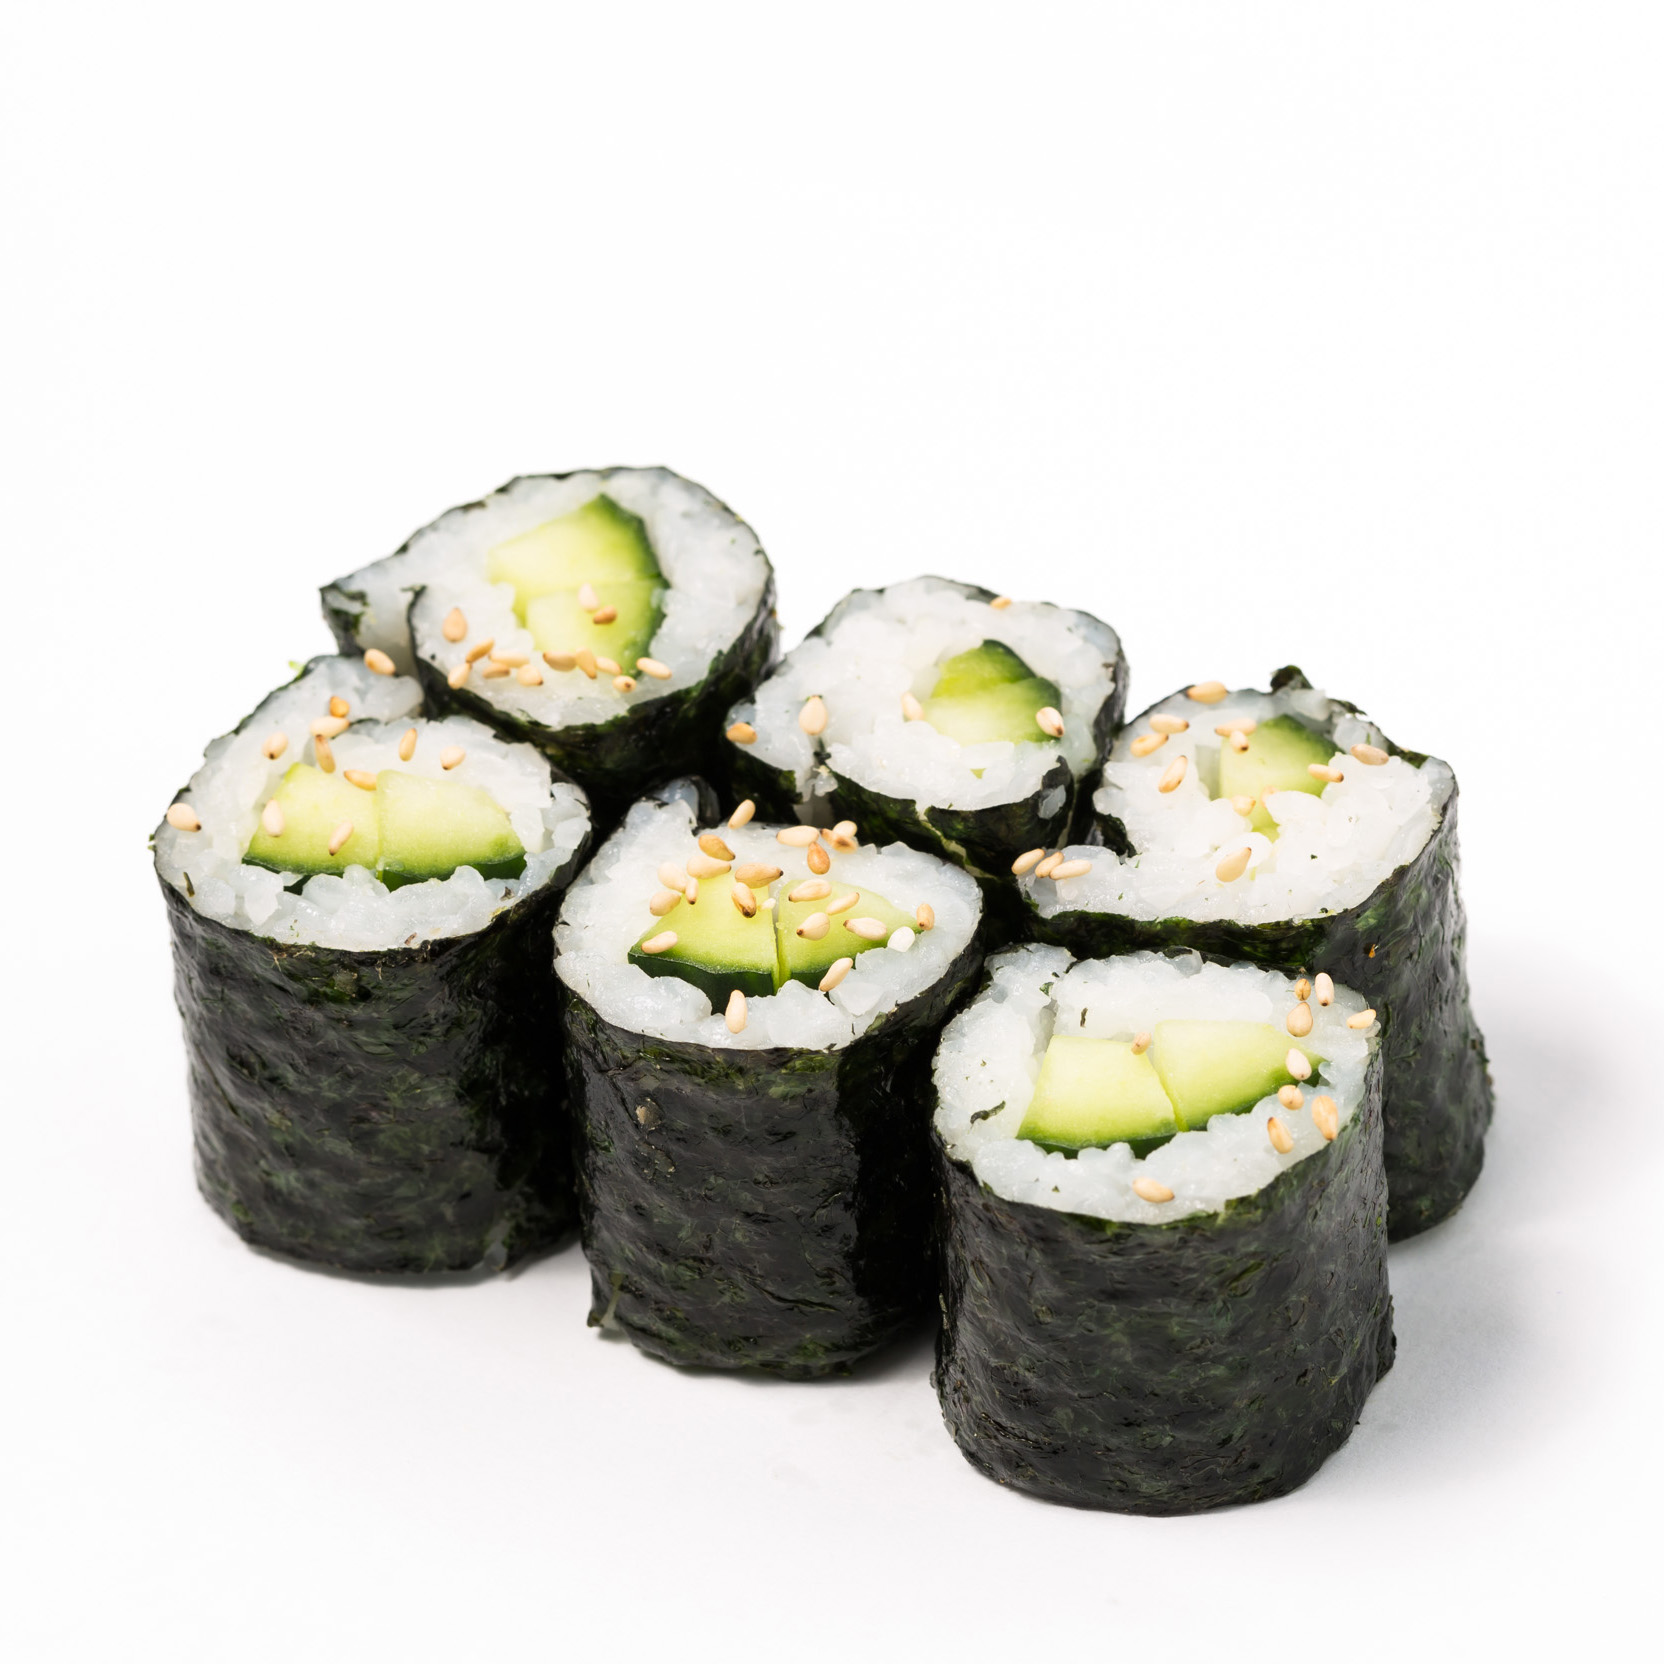 Cucumber small Roll (Vege)